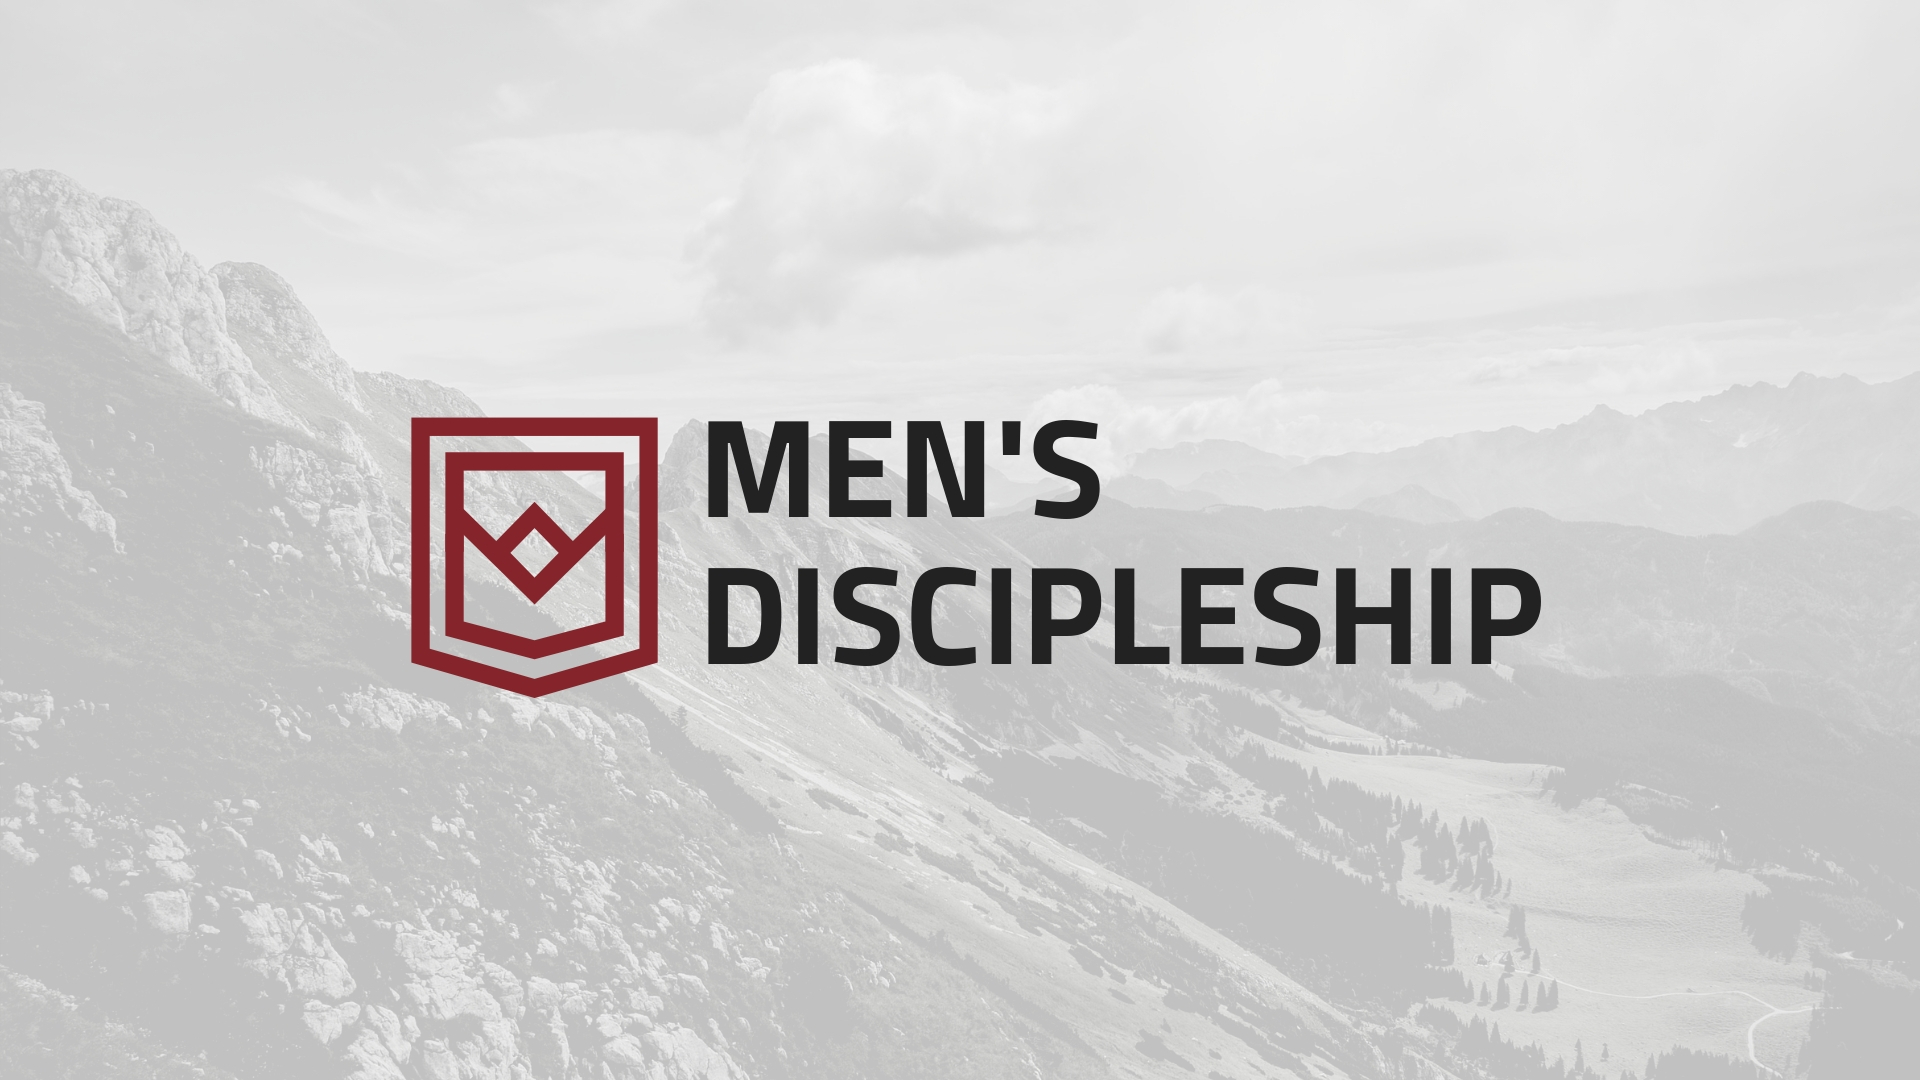 Men's discipleship 2019 slide image